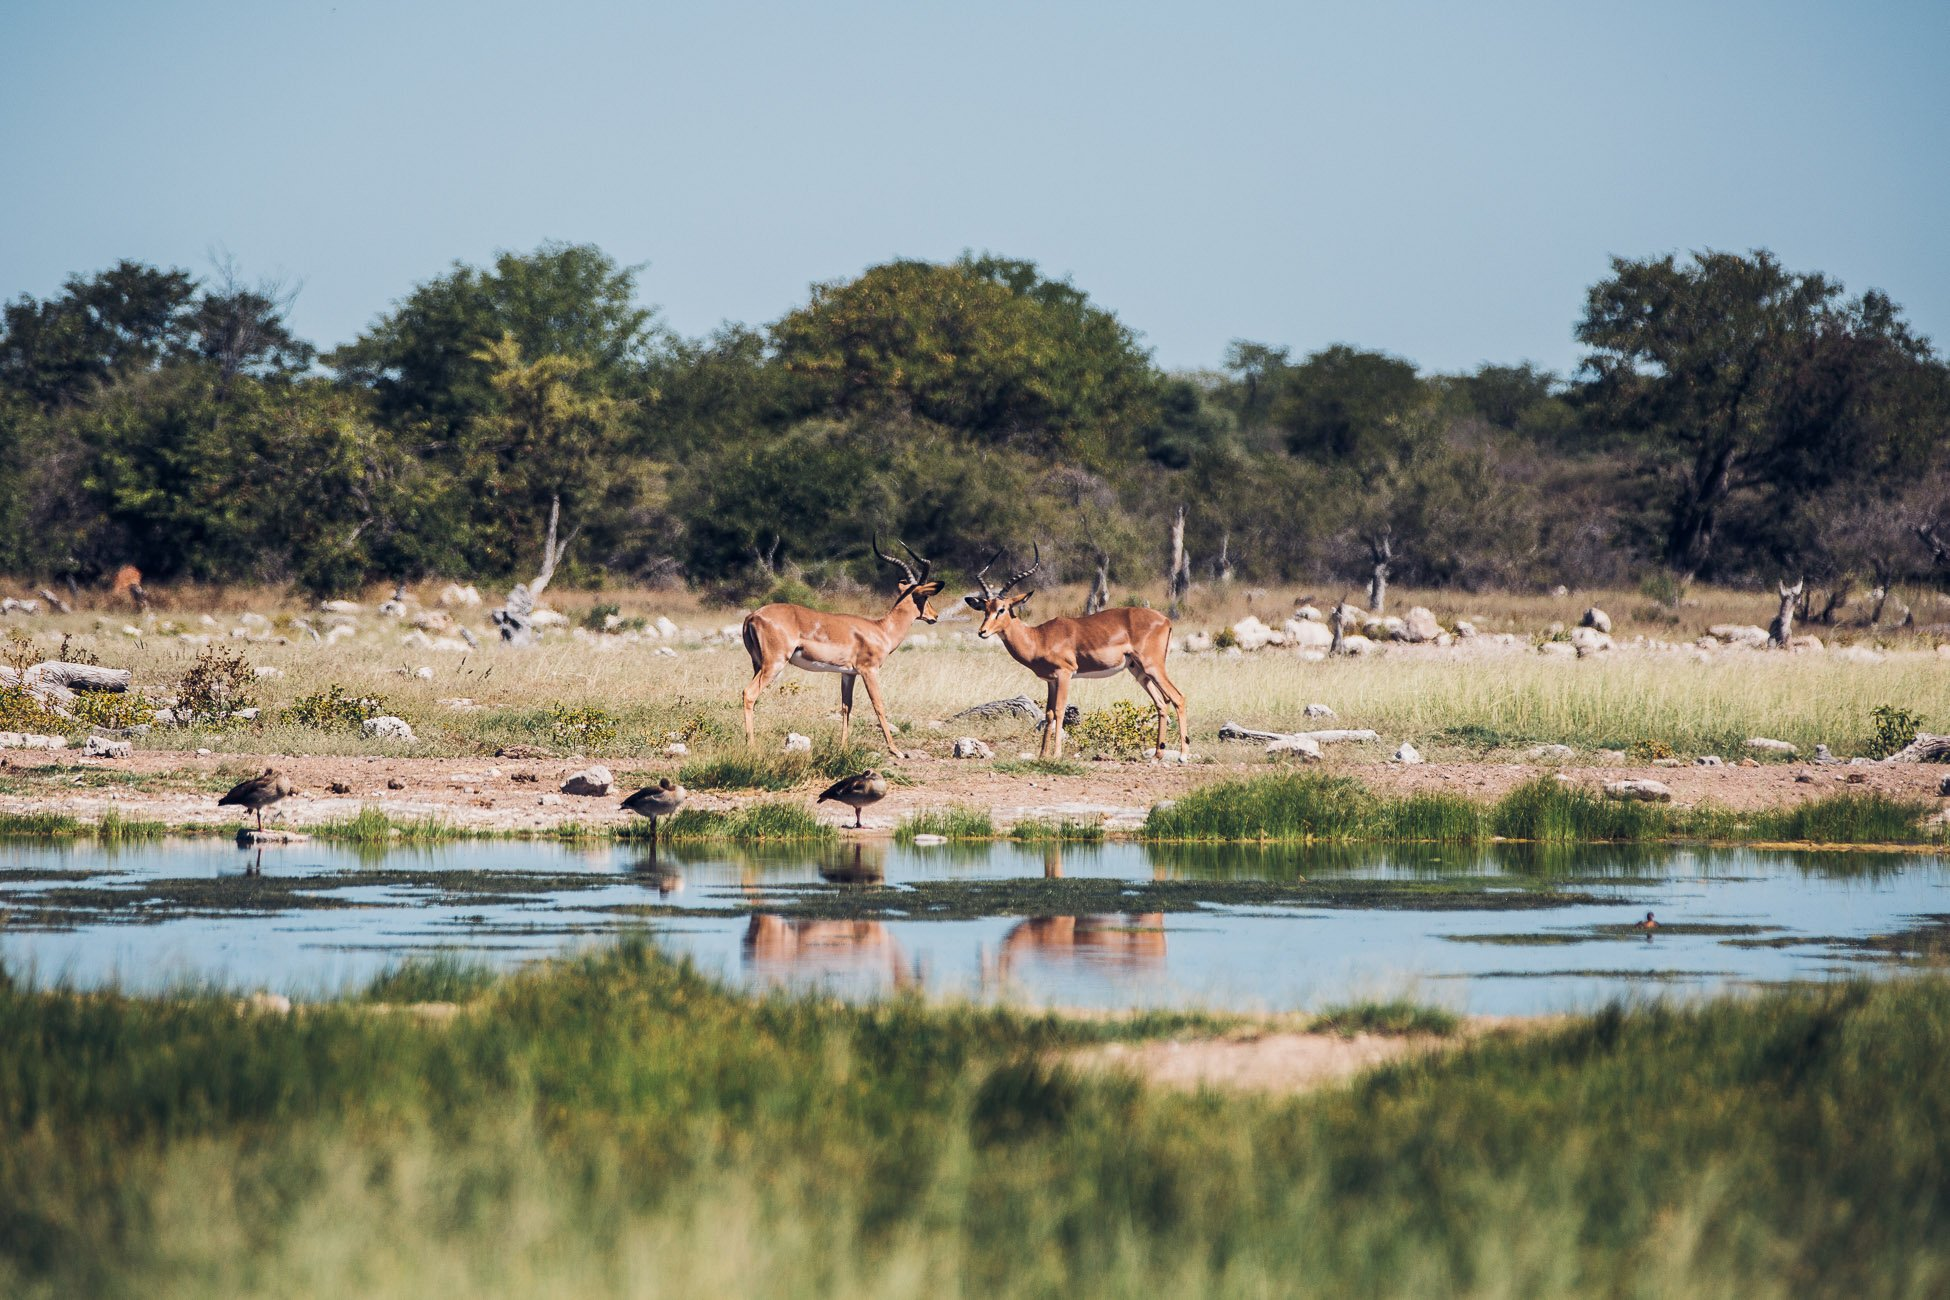 A waterhole at Etosha National Park